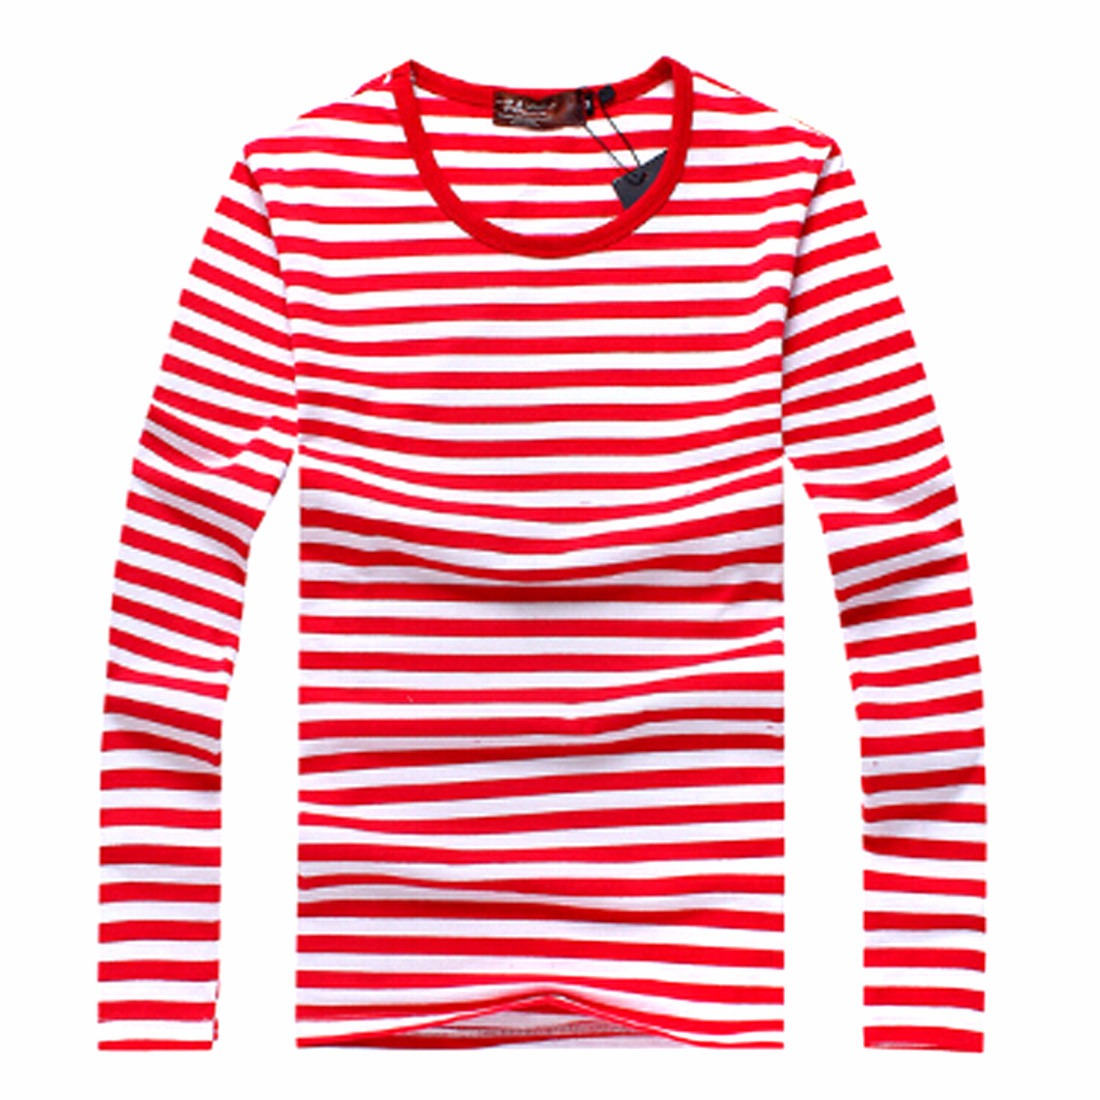 Shop from the world's largest selection and best deals for Men's Striped Long Sleeve T-Shirts. Free delivery and free returns on eBay Plus items.